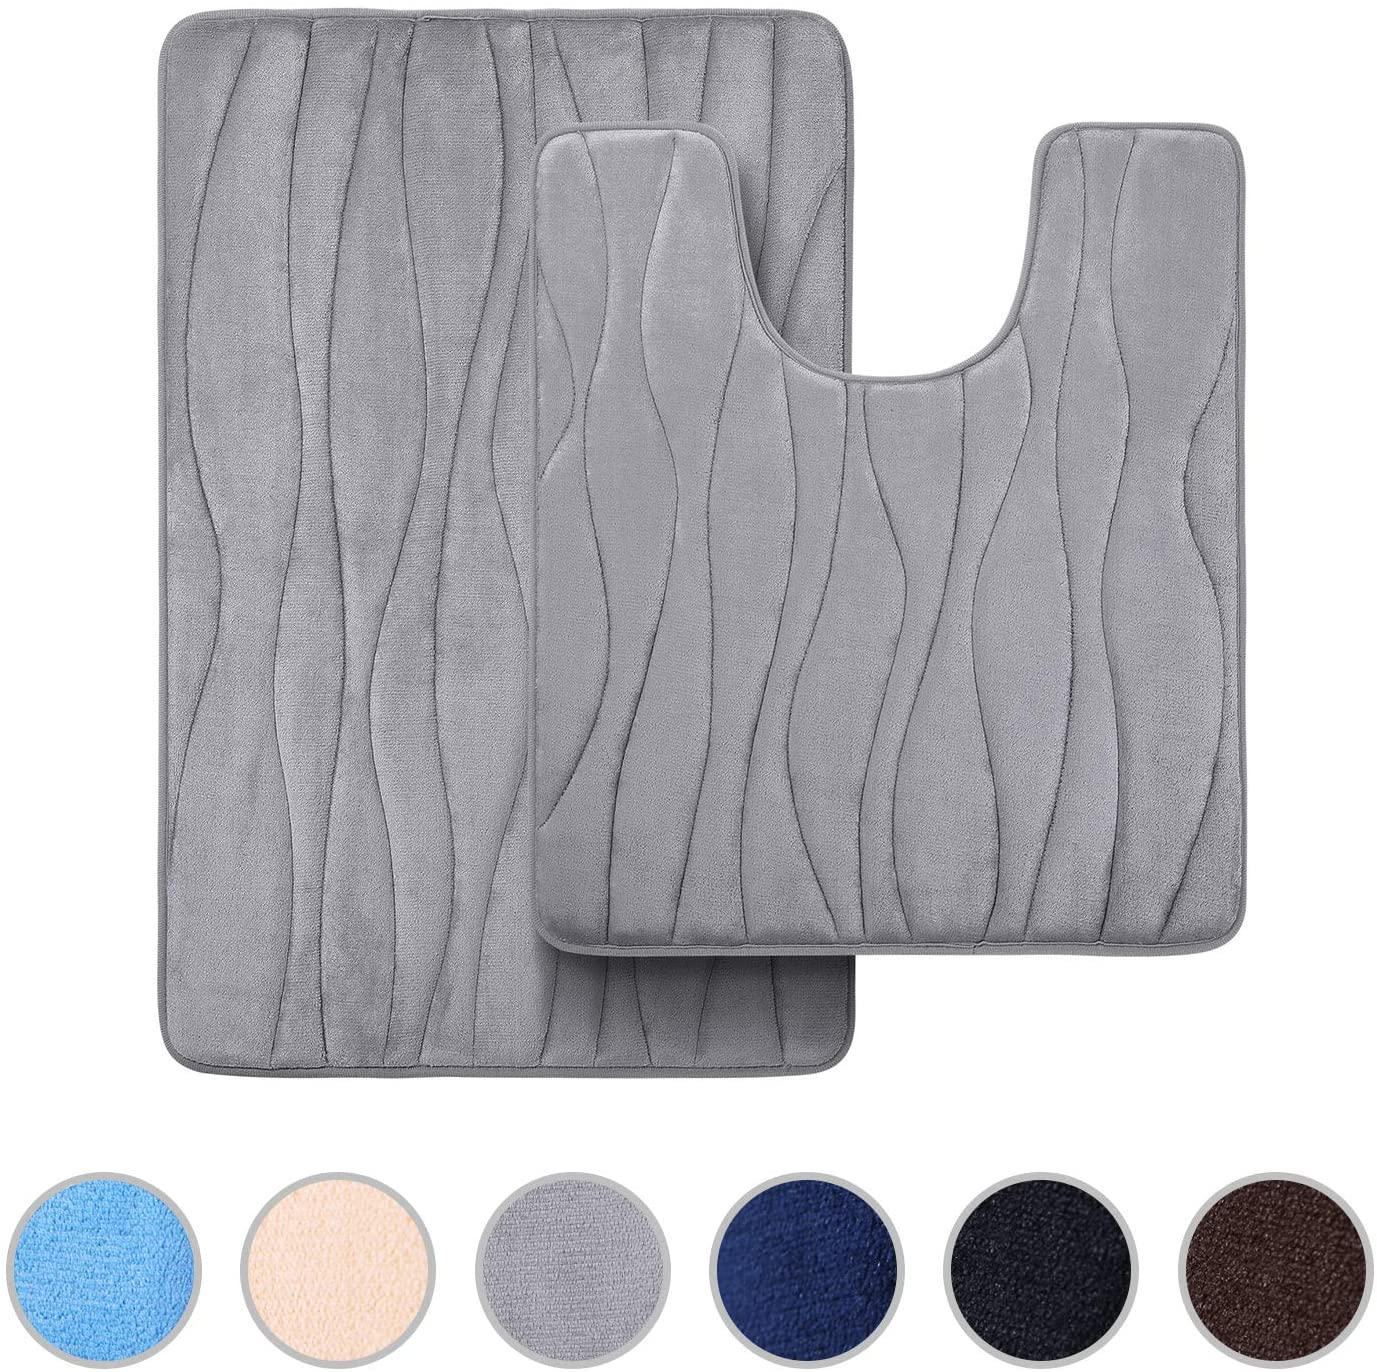 Buganda Memory Foam 2 Pieces Bath Rugs Set - Soft Non-Slip Thick Bath Mat and Contour Toilet Rug, Absorbent Washable Bathroom Rugs and Mats Set (20